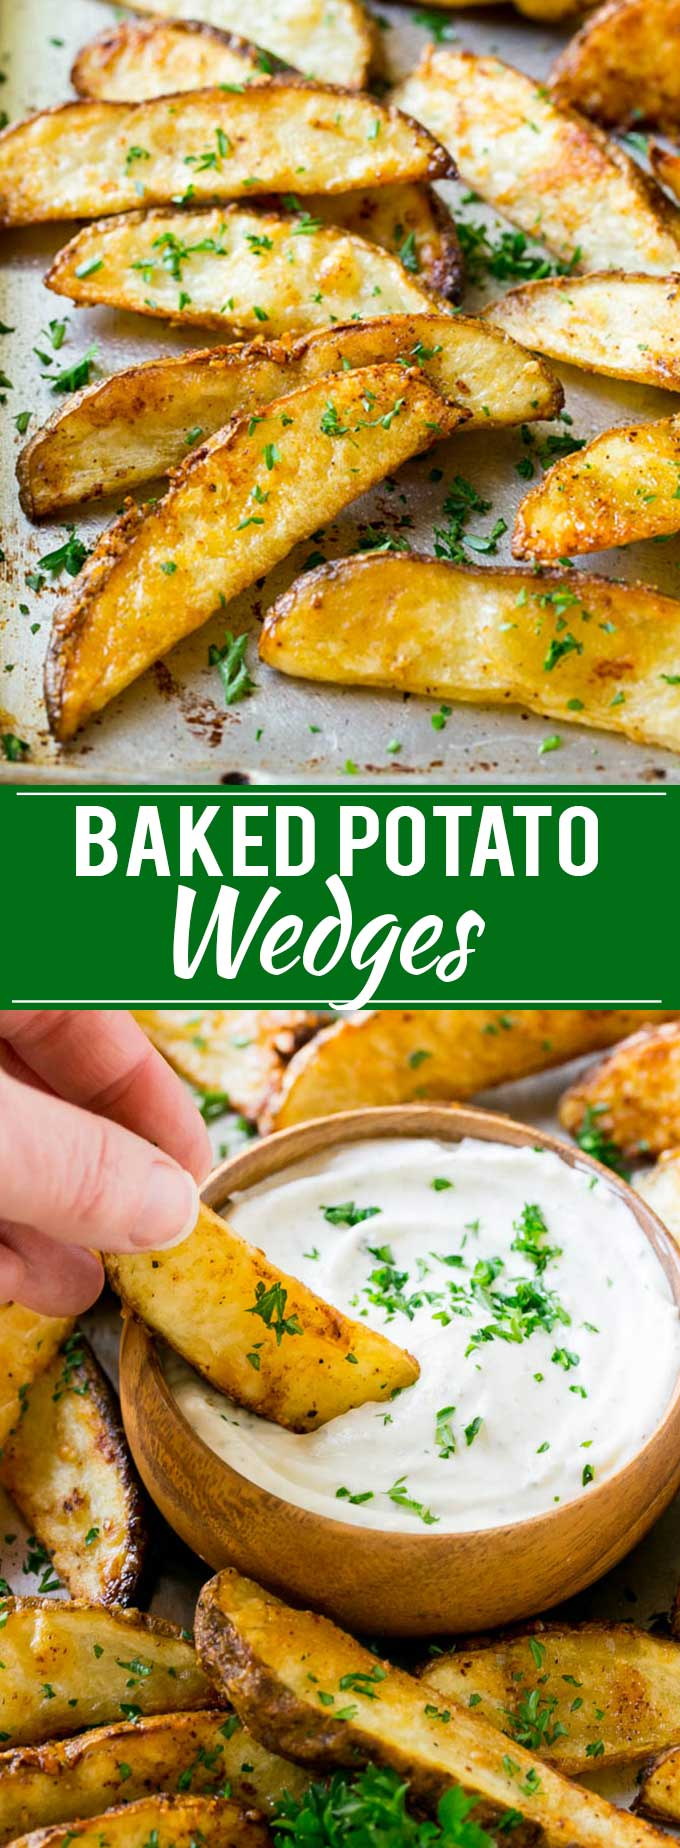 Baked Potato Wedges Recipe | Baked French Fries | Oven Fries | Oven Fried Potatoes #frenchfries #potatoes #fries #sidedish #glutenfree #dinner #dinneratthezoo